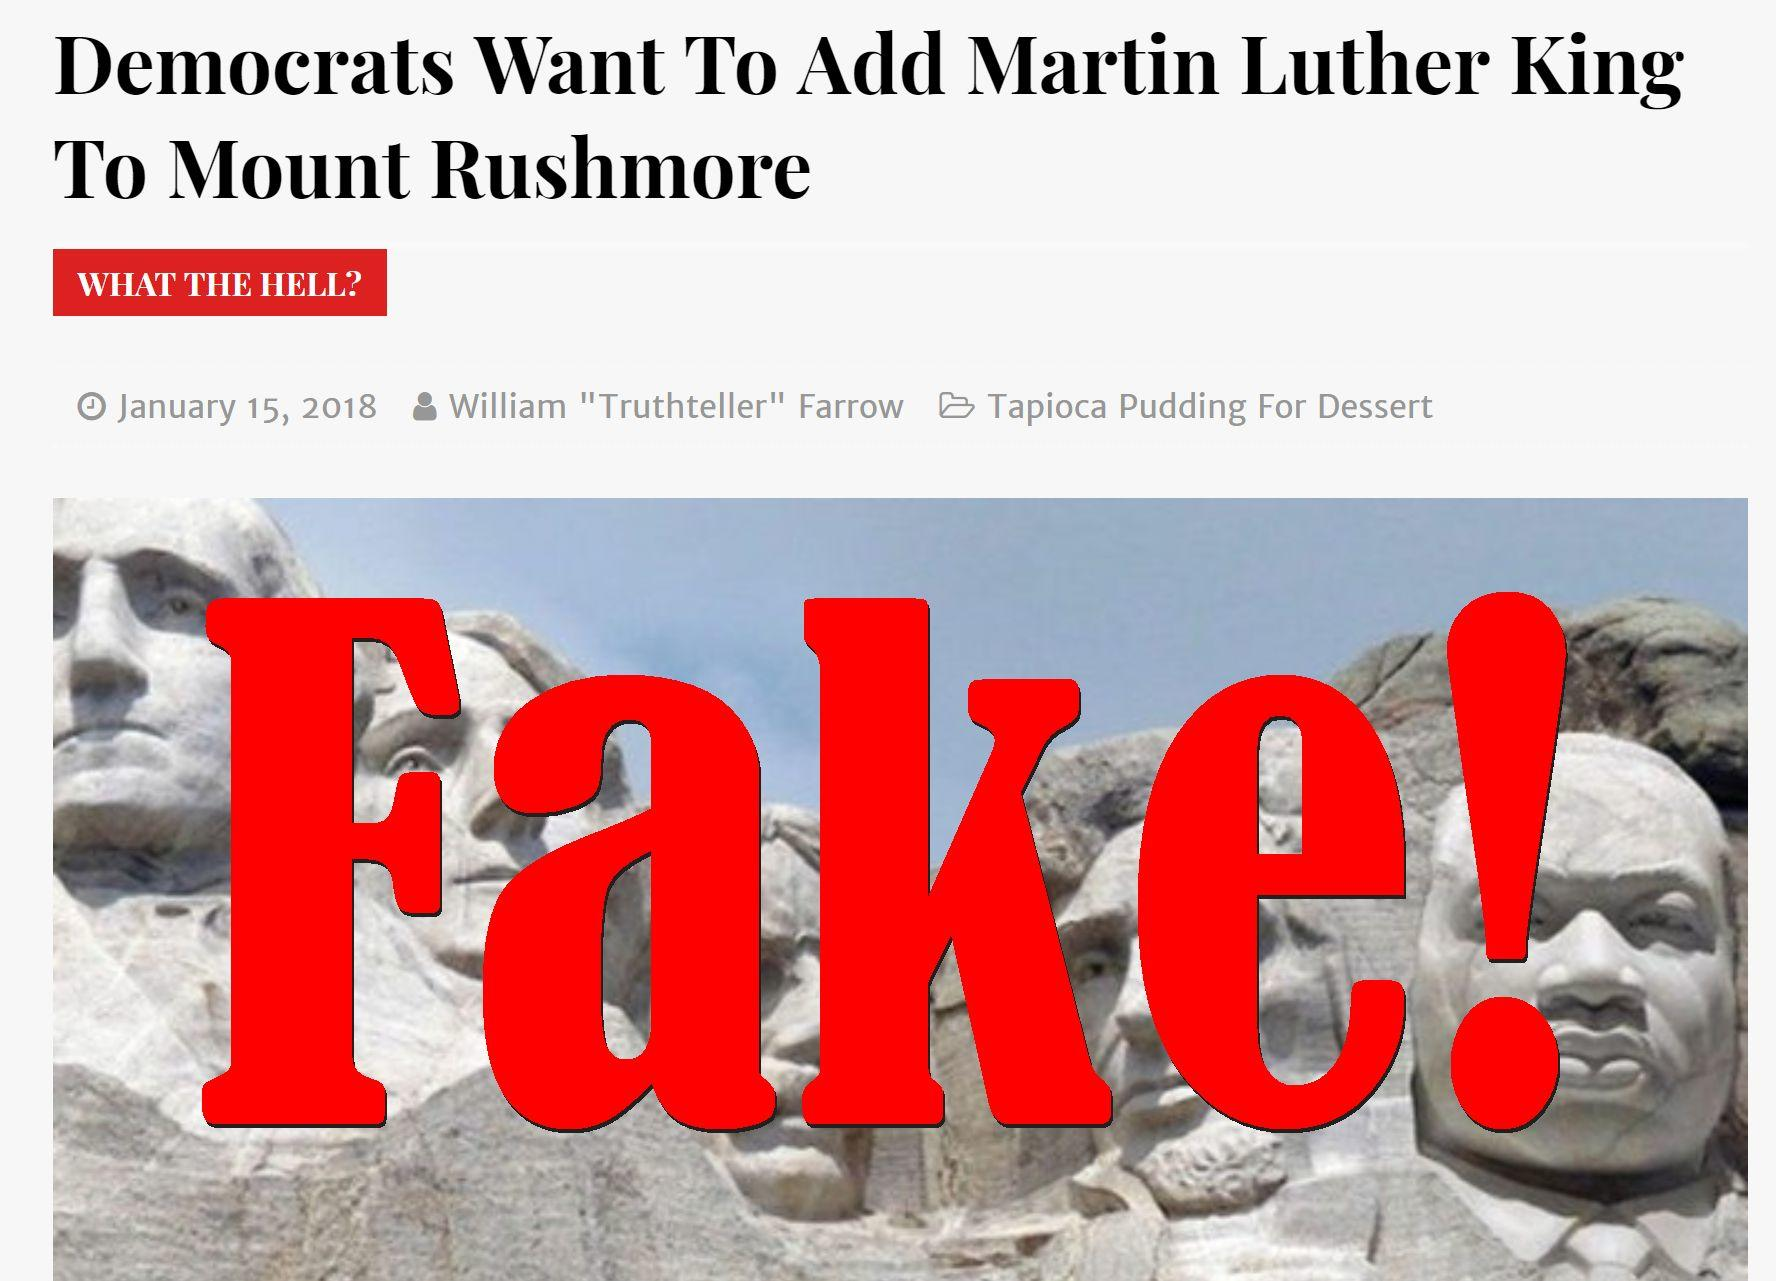 Fake News: Democrats Do NOT Want To Add Martin Luther King To Mount Rushmore